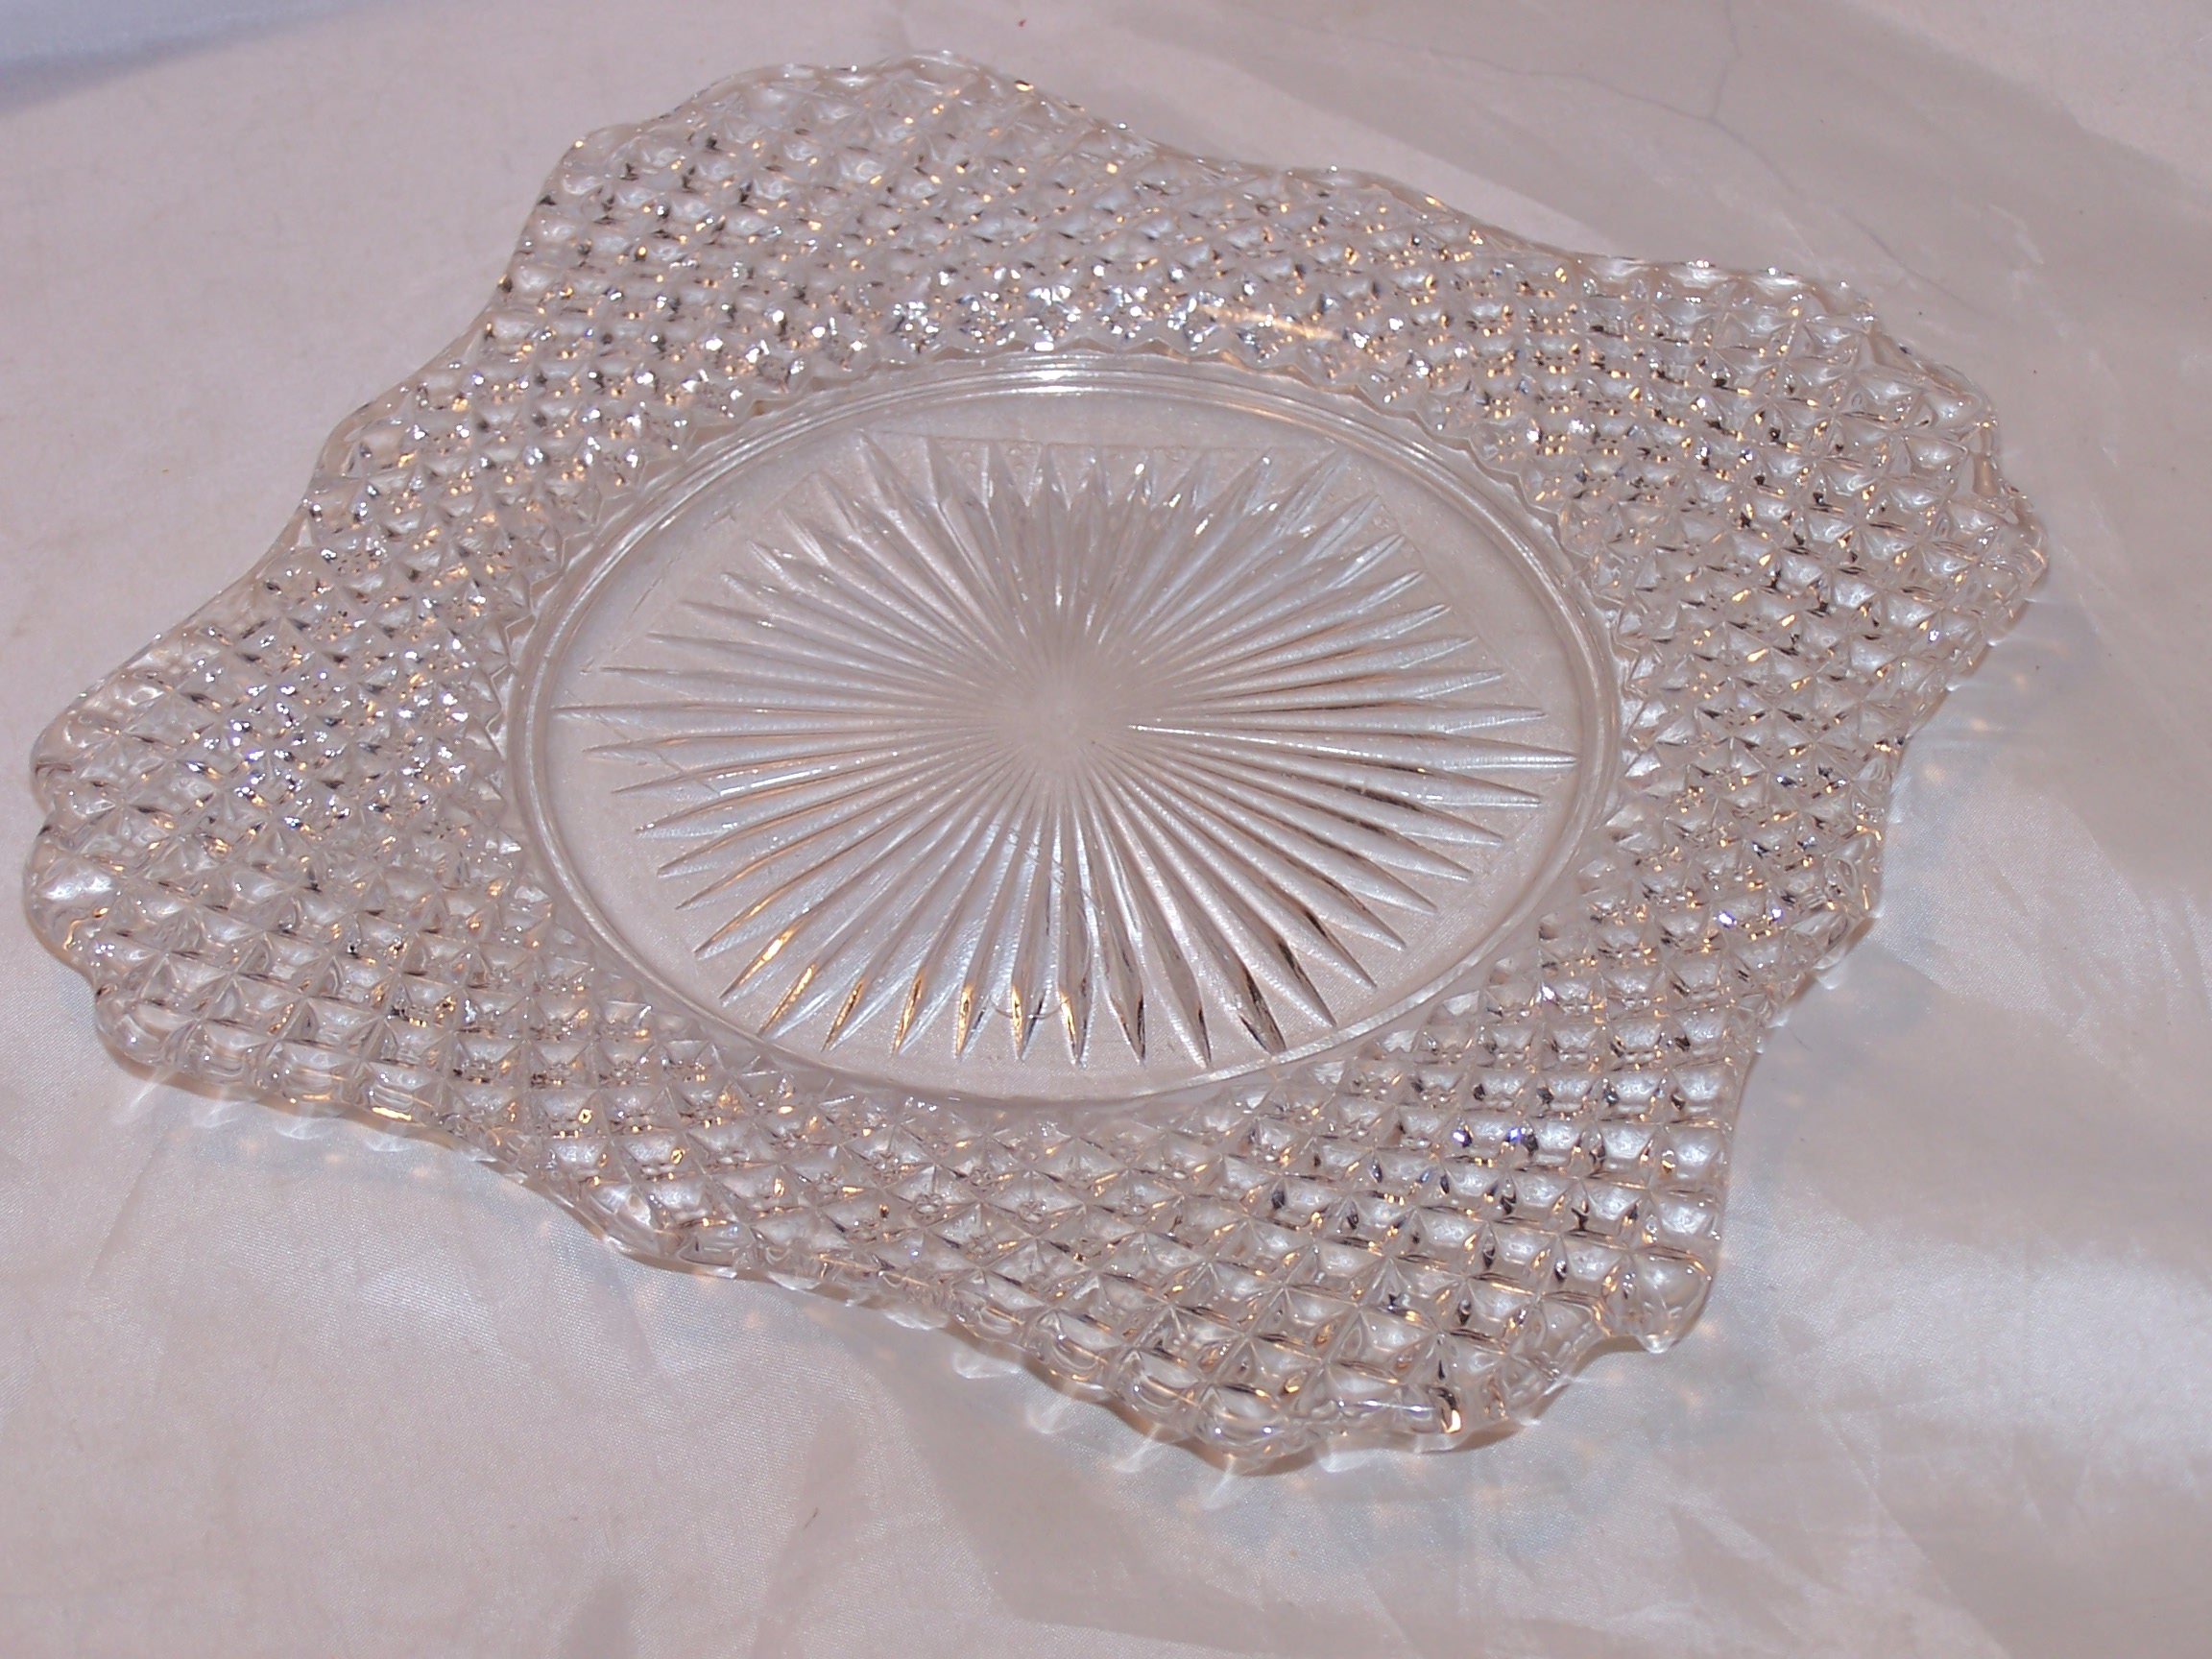 Image 1 of Glass Salad Plate, Square w Scalloping, Vintage